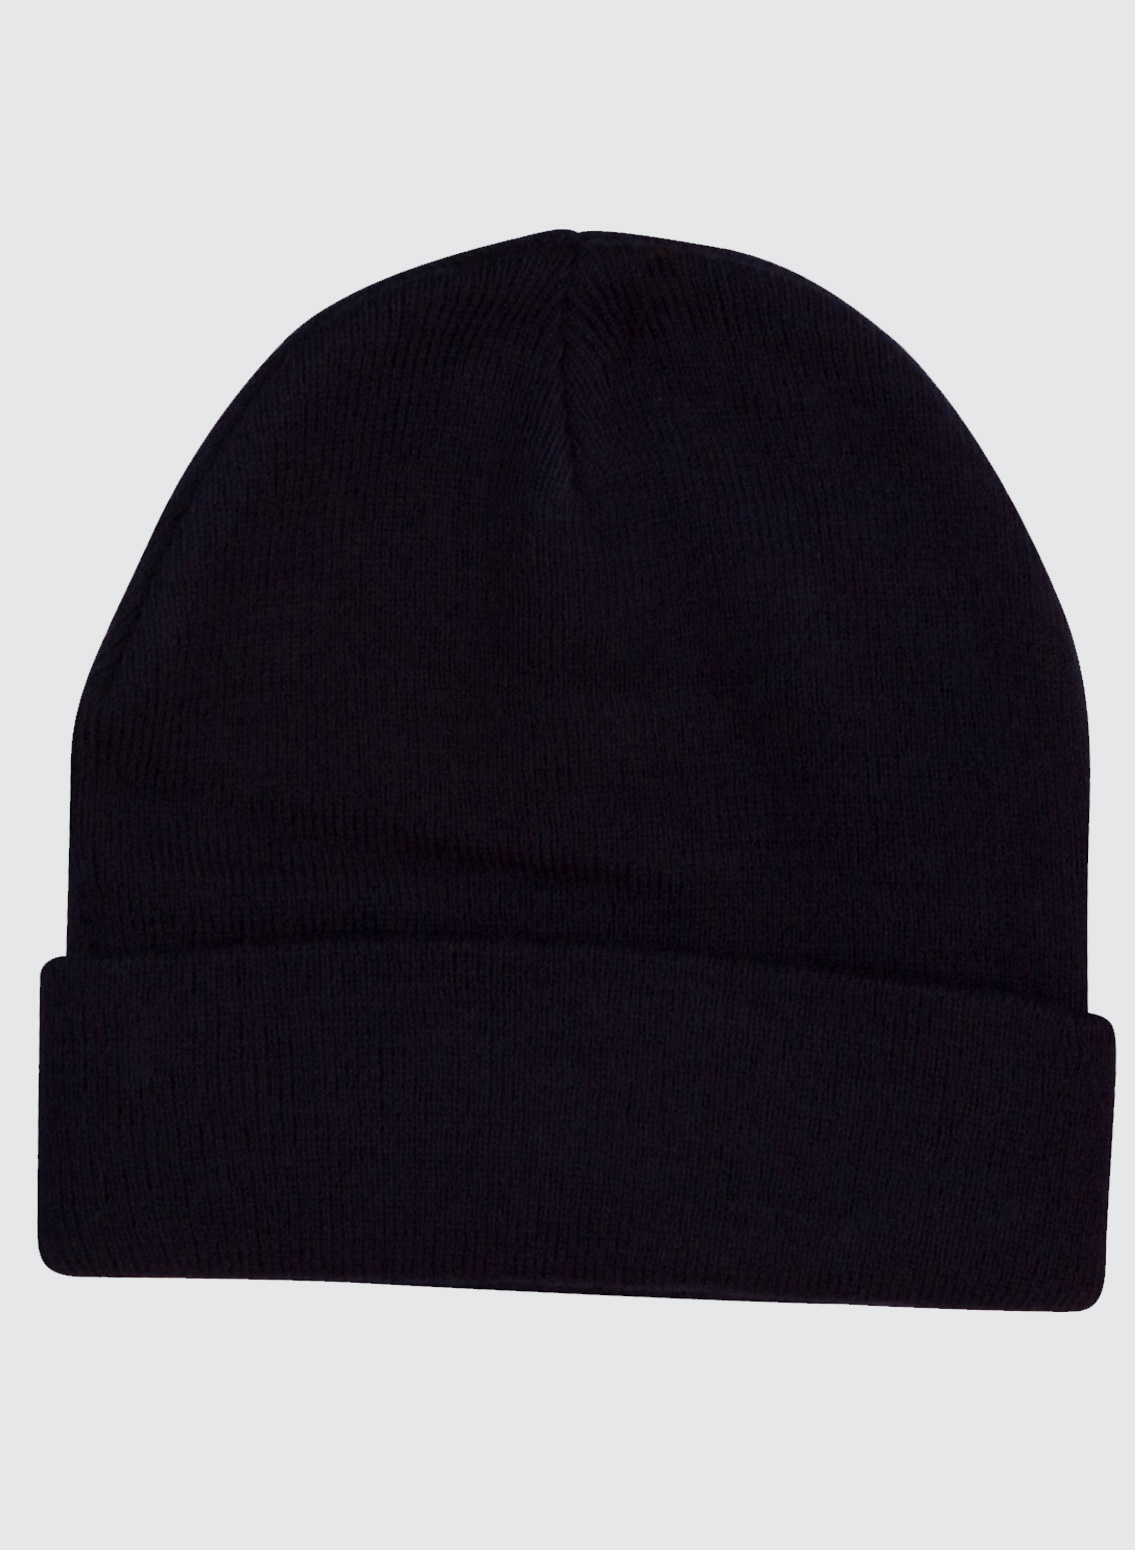 a87ae8c5907 CH28 Roll Up Acrylic Beanie - Business Image Group